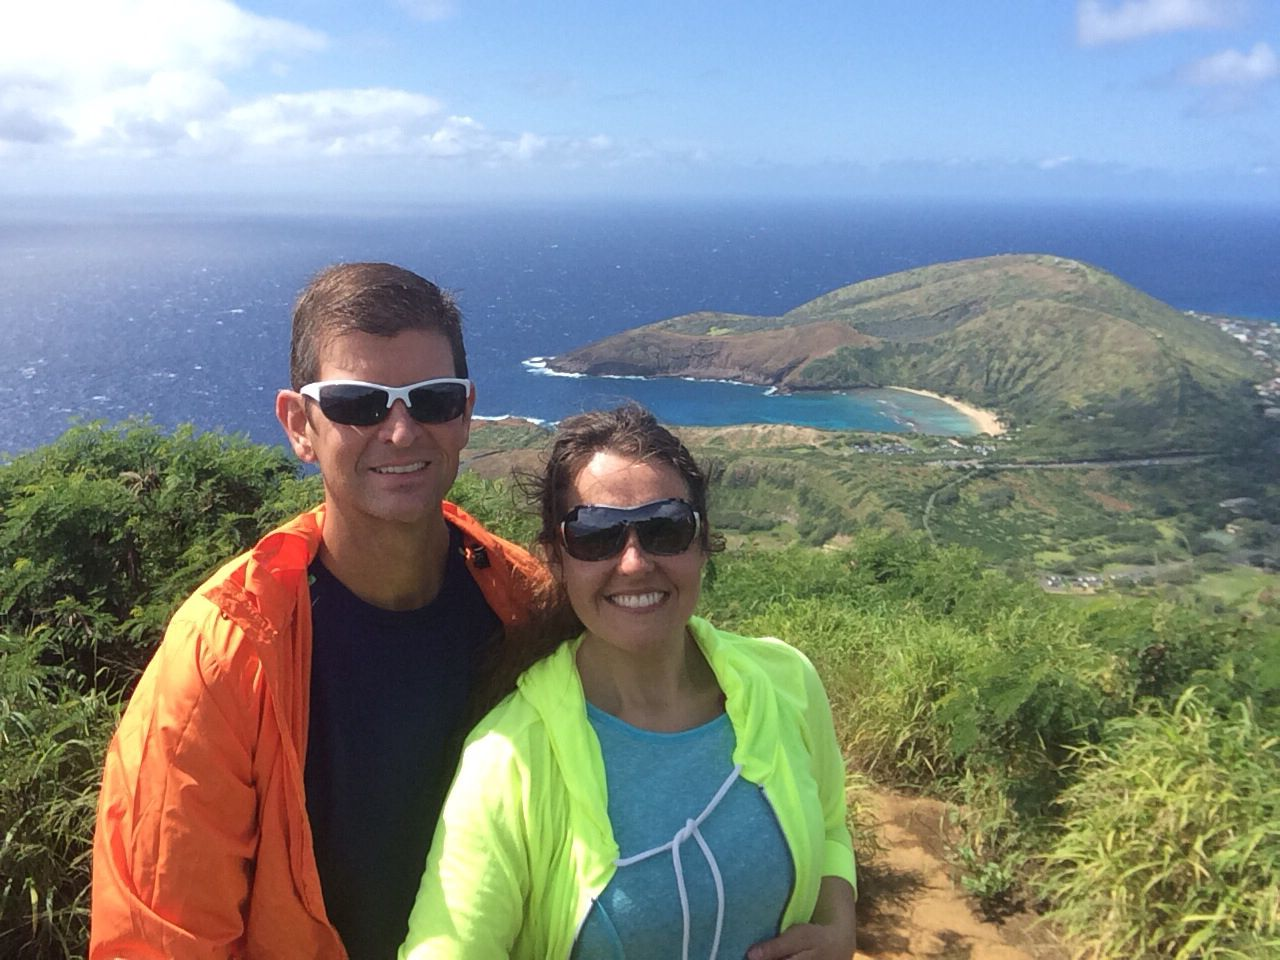 Koko Crater Oahu Hawaii Snapchat spectacles, Round